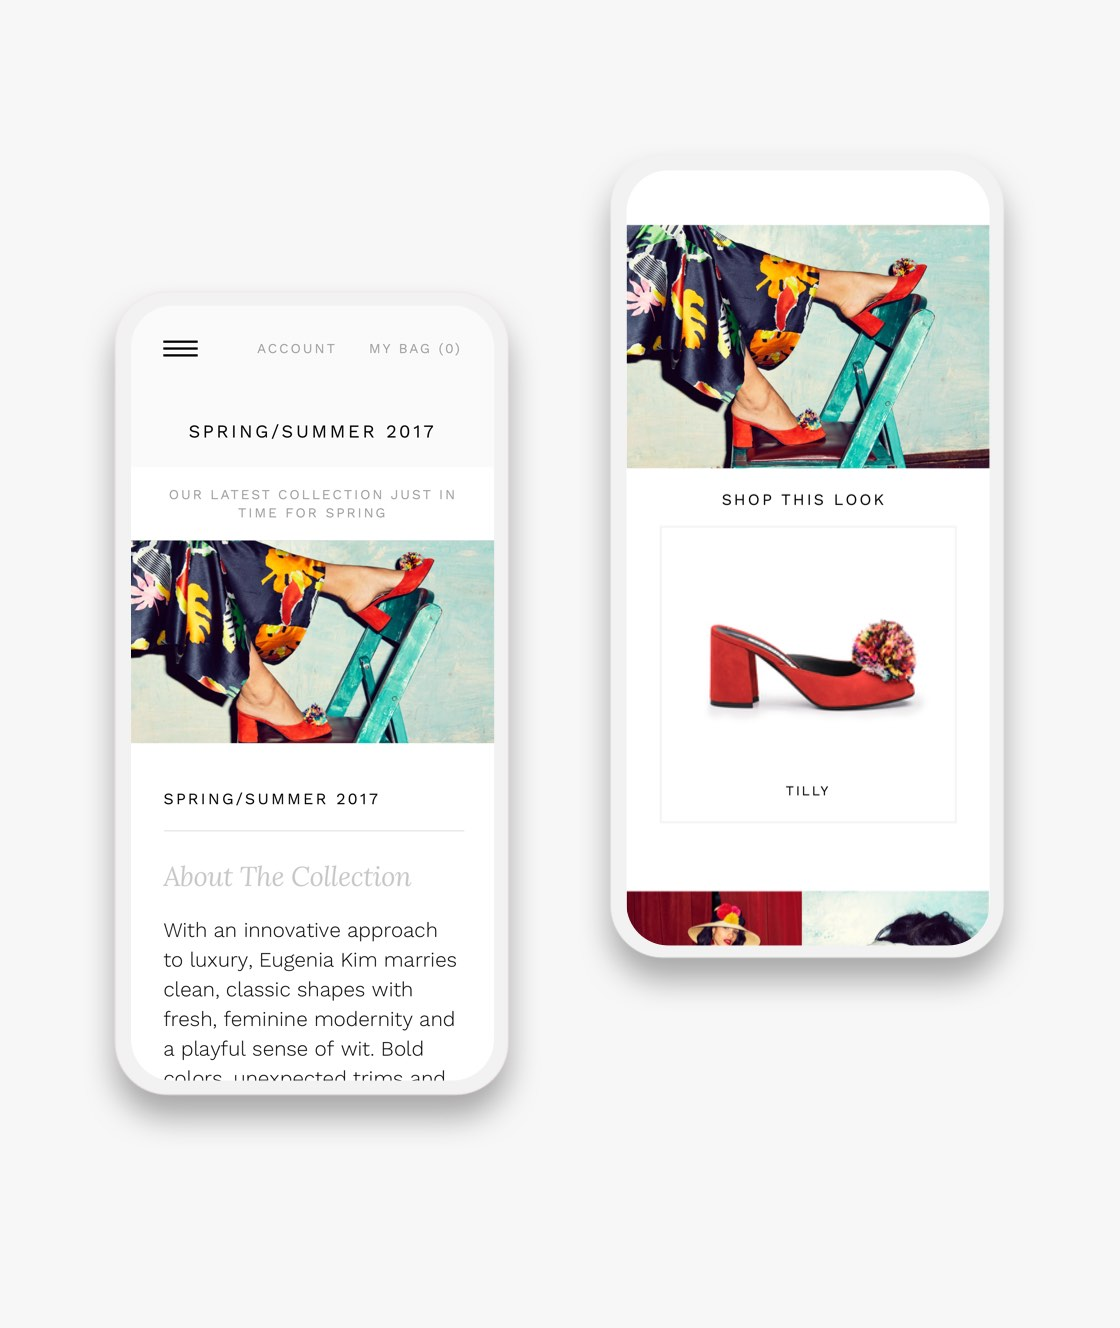 eugenia kim shop the look mobile pages on smartphones